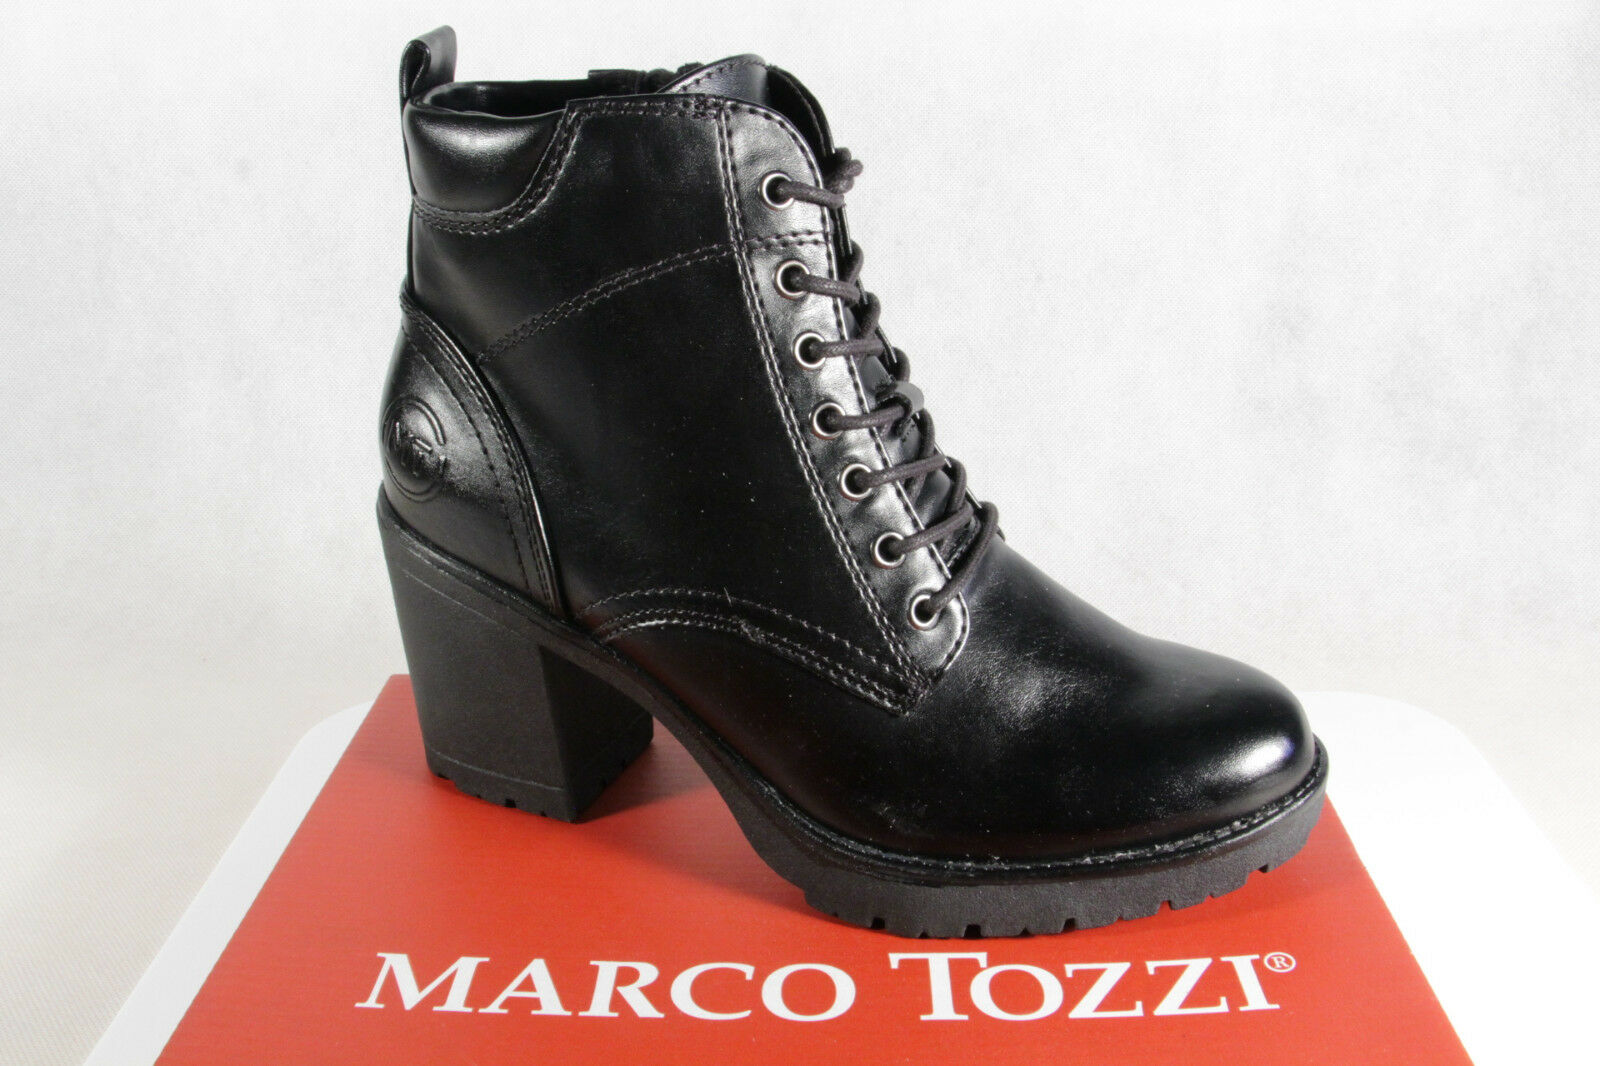 MARCO TOZZI Women's Boots Ankle Boots Lace Up Boots, 25204 New